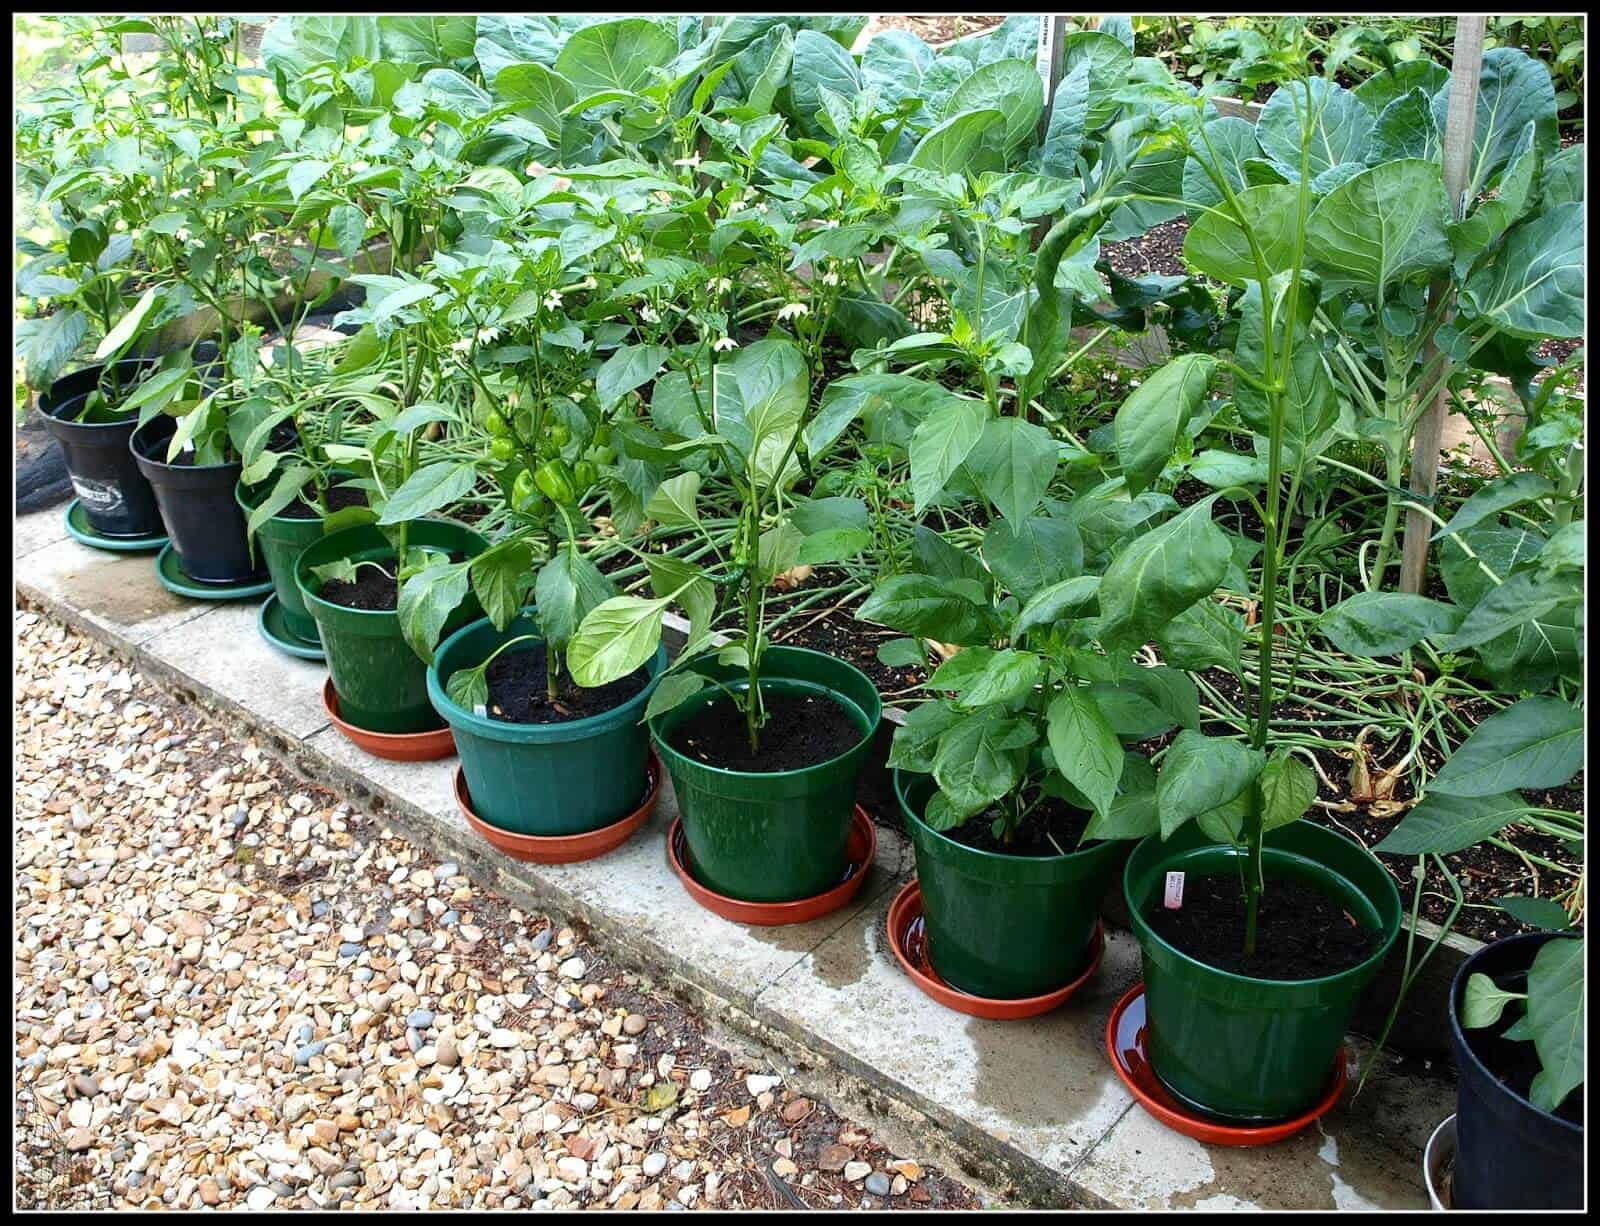 Growing habanero peppers in containers